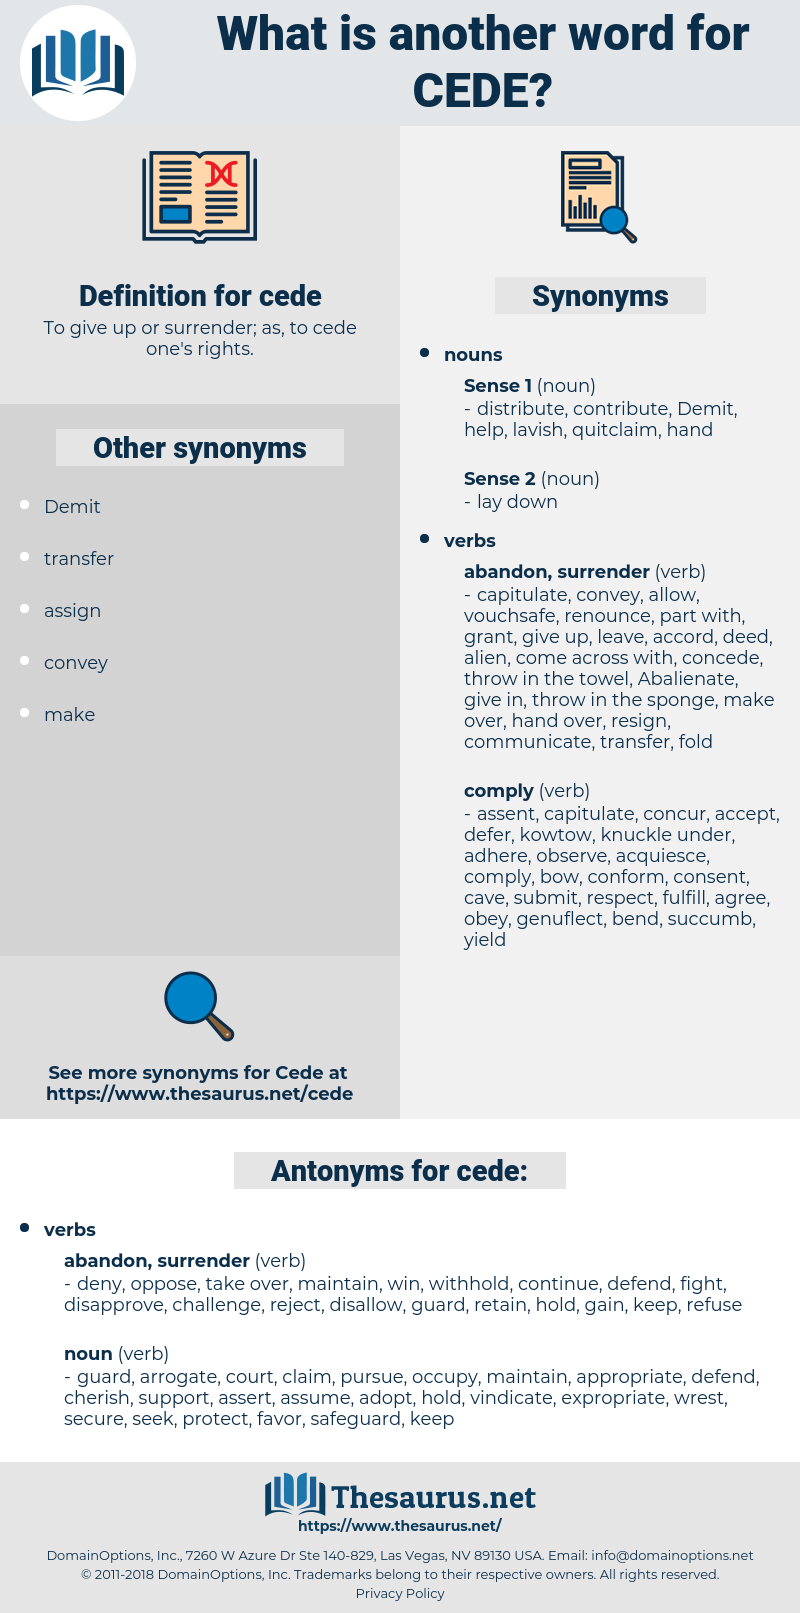 Synonyms for CEDE - Thesaurus.net